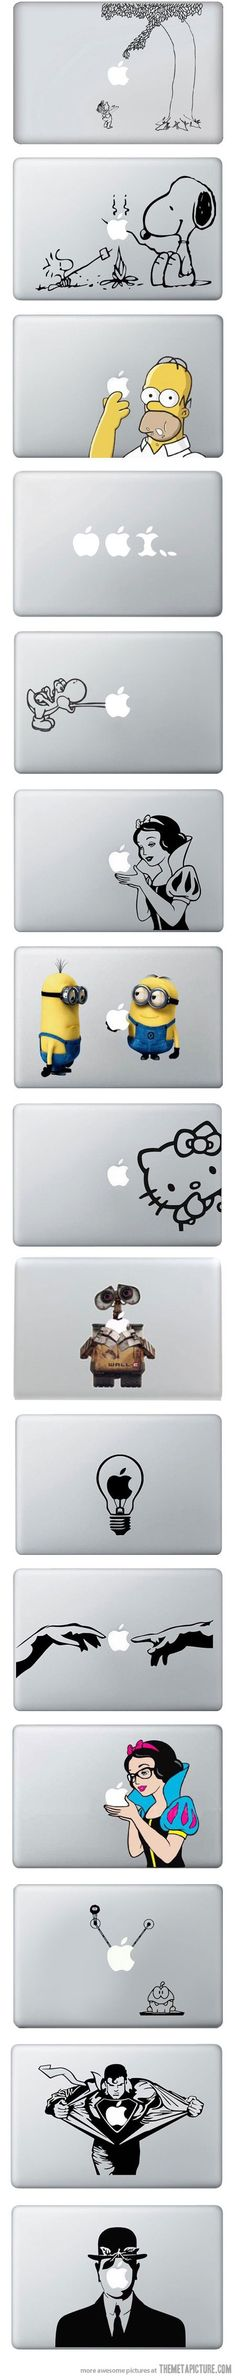 Mac Book Designs